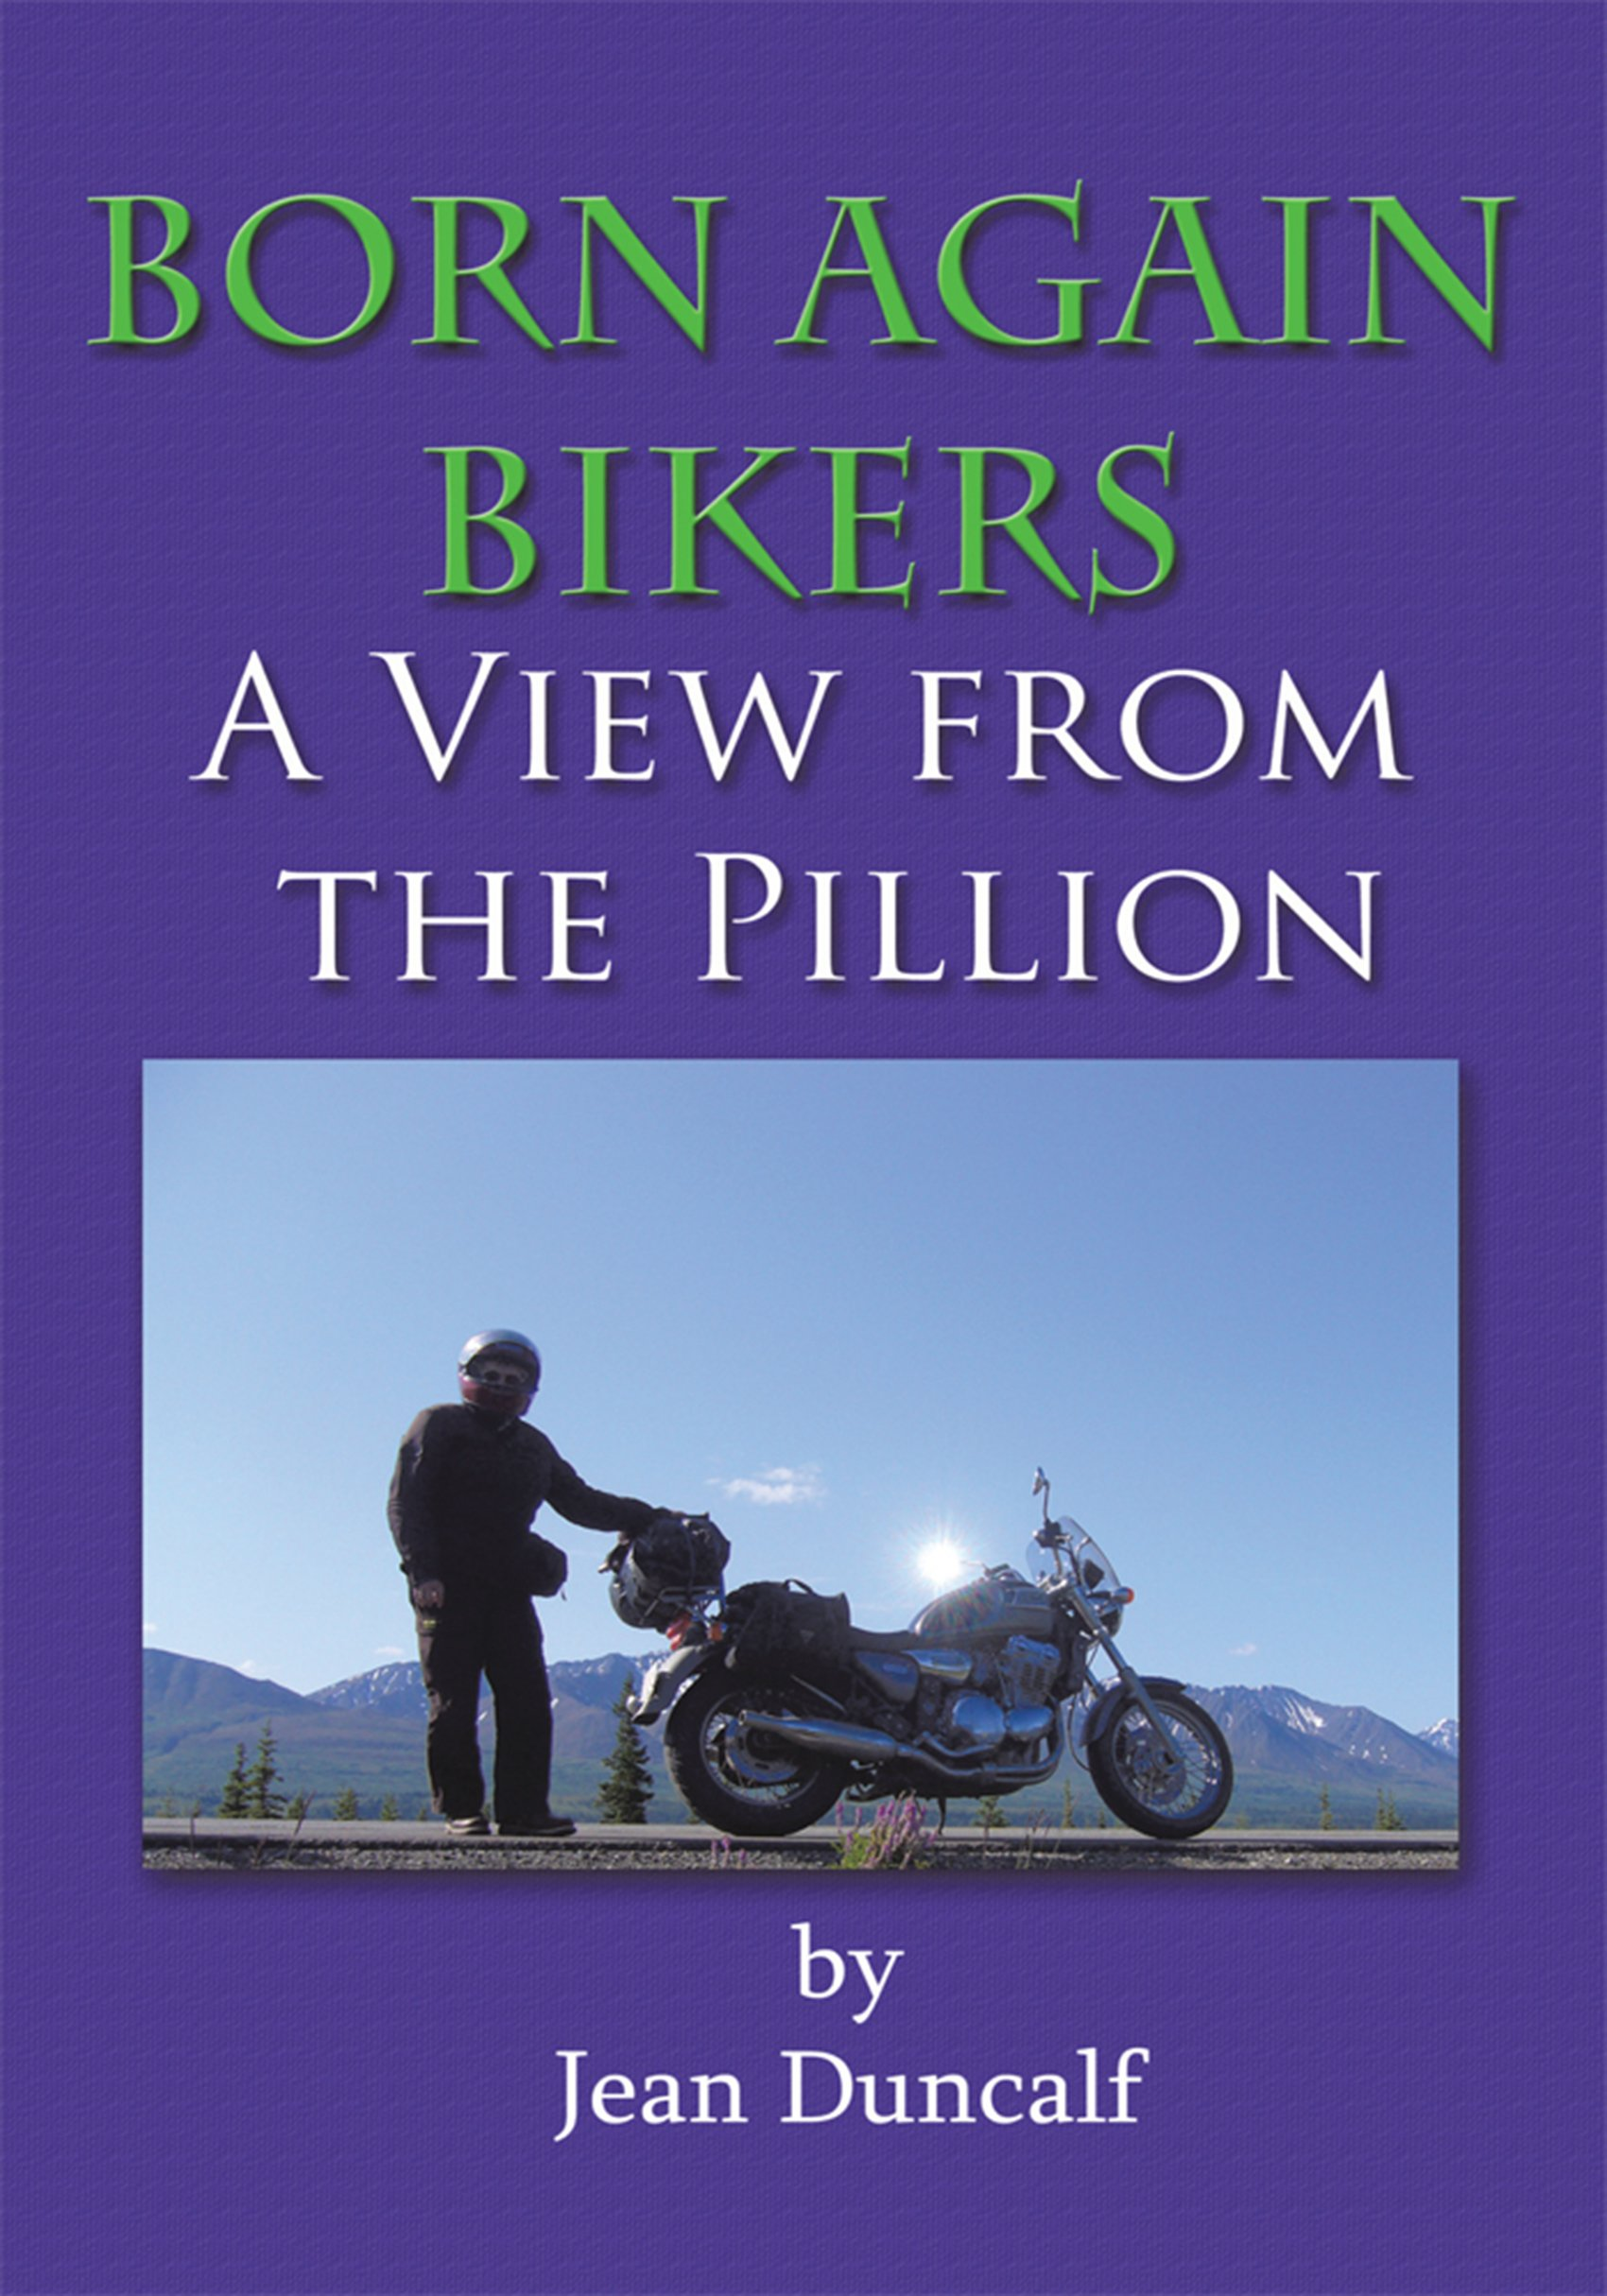 Download Born Again Bikers a View from the Pillion (English Edition)